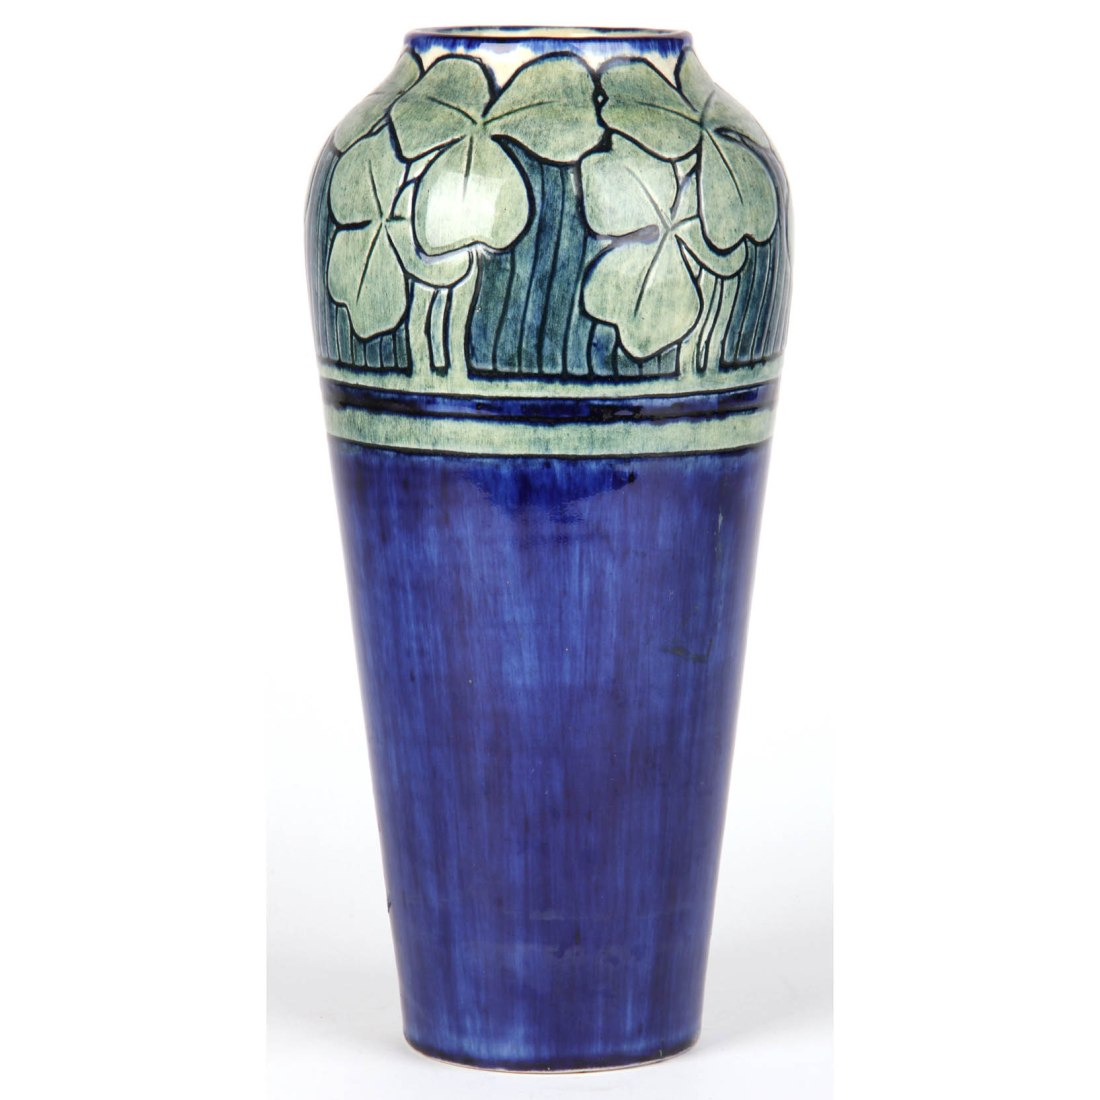 Baluster vase with clover leaves. 1905.